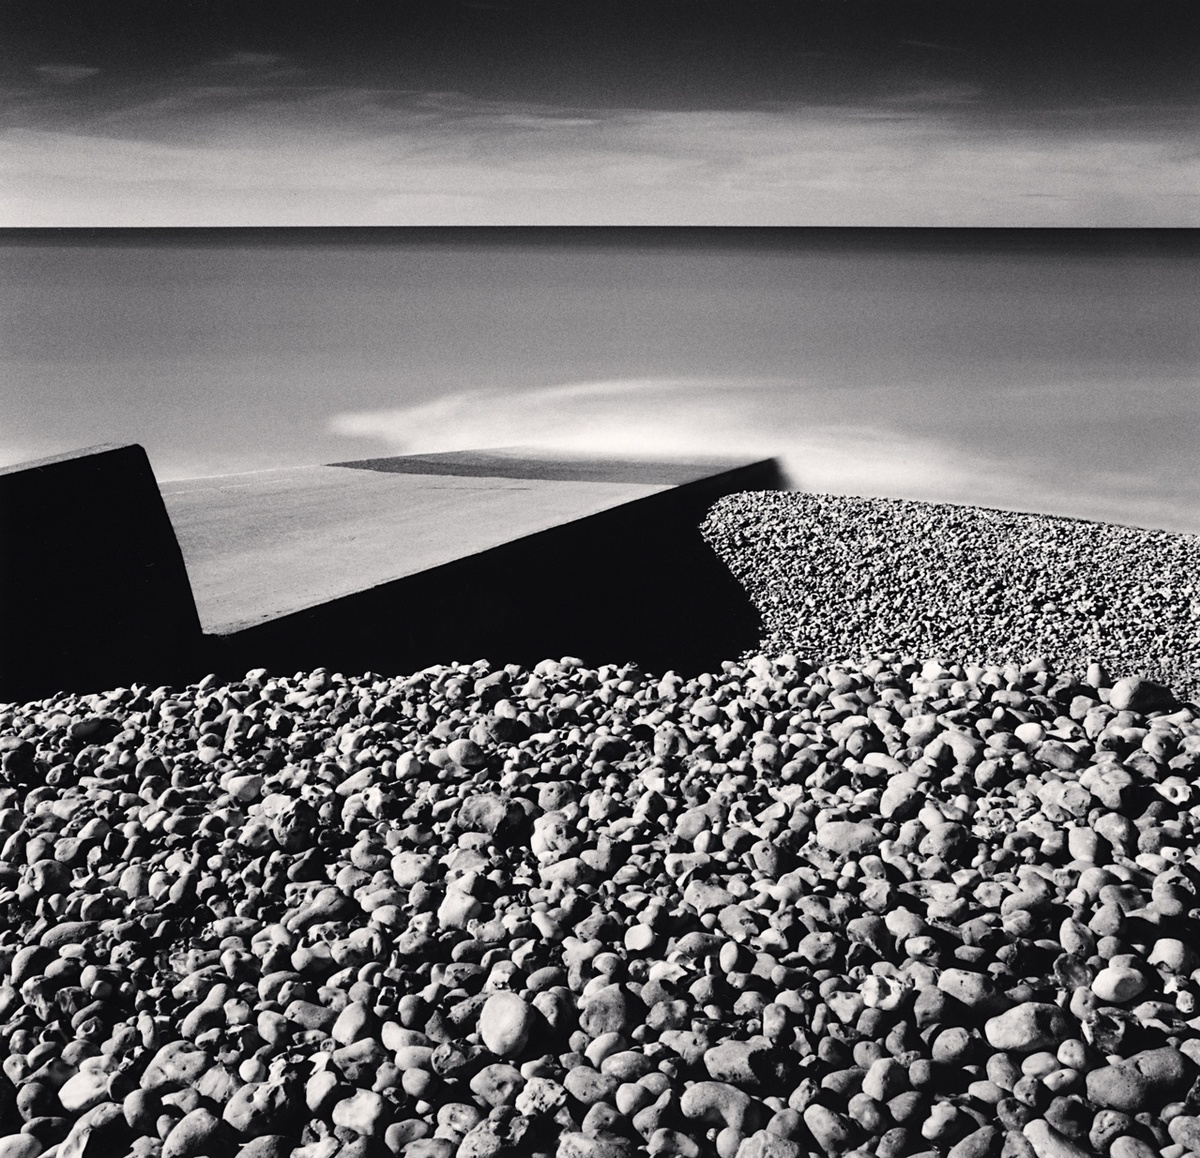 Michael Kenna Pebble Beach, Ault, Picardy, France 2009 Sepia Toned Silver Gelatin Print From An Edition Of 45 8 x 8 Inches